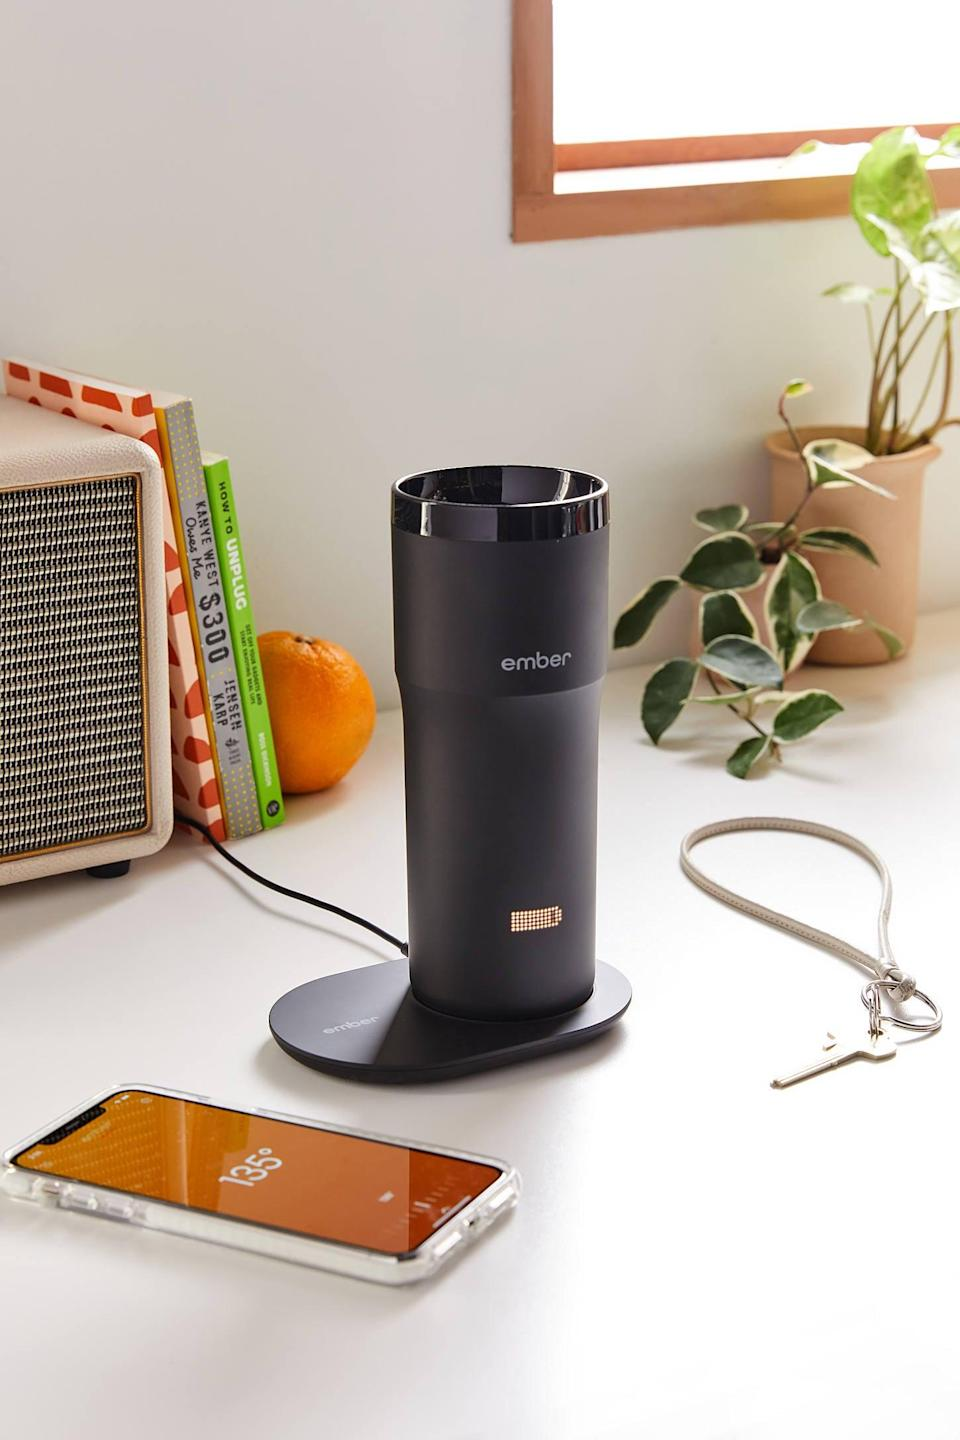 """<p>Make sure his coffee's at the perfect temperature all day long with the <a href=""""https://www.popsugar.com/buy/Ember-Travel-Mug-545915?p_name=Ember%20Travel%20Mug&retailer=urbanoutfitters.com&pid=545915&price=180&evar1=geek%3Aus&evar9=36026397&evar98=https%3A%2F%2Fwww.popsugar.com%2Ftech%2Fphoto-gallery%2F36026397%2Fimage%2F47175965%2FEmber-Travel-Mug&list1=gifts%2Cgift%20guide%2Cdigital%20life%2Ctech%20gifts%2Cgifts%20for%20men&prop13=mobile&pdata=1"""" class=""""link rapid-noclick-resp"""" rel=""""nofollow noopener"""" target=""""_blank"""" data-ylk=""""slk:Ember Travel Mug"""">Ember Travel Mug</a> ($180).</p>"""